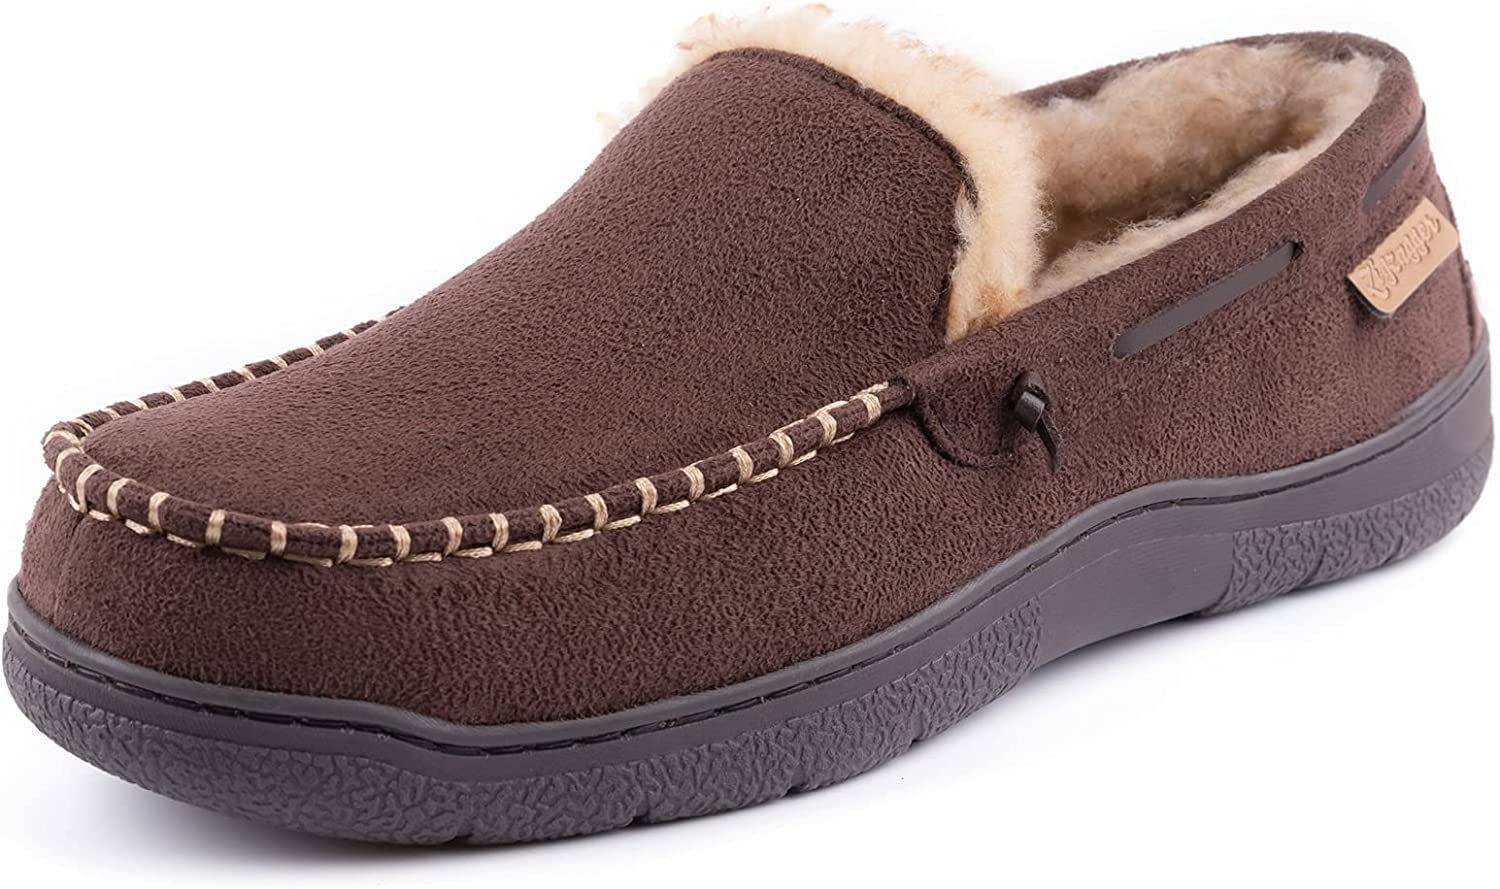 Zigzagger Men's Moccasin 2021 spring and summer new Slippers Shoes Memory Foam House Price reduction